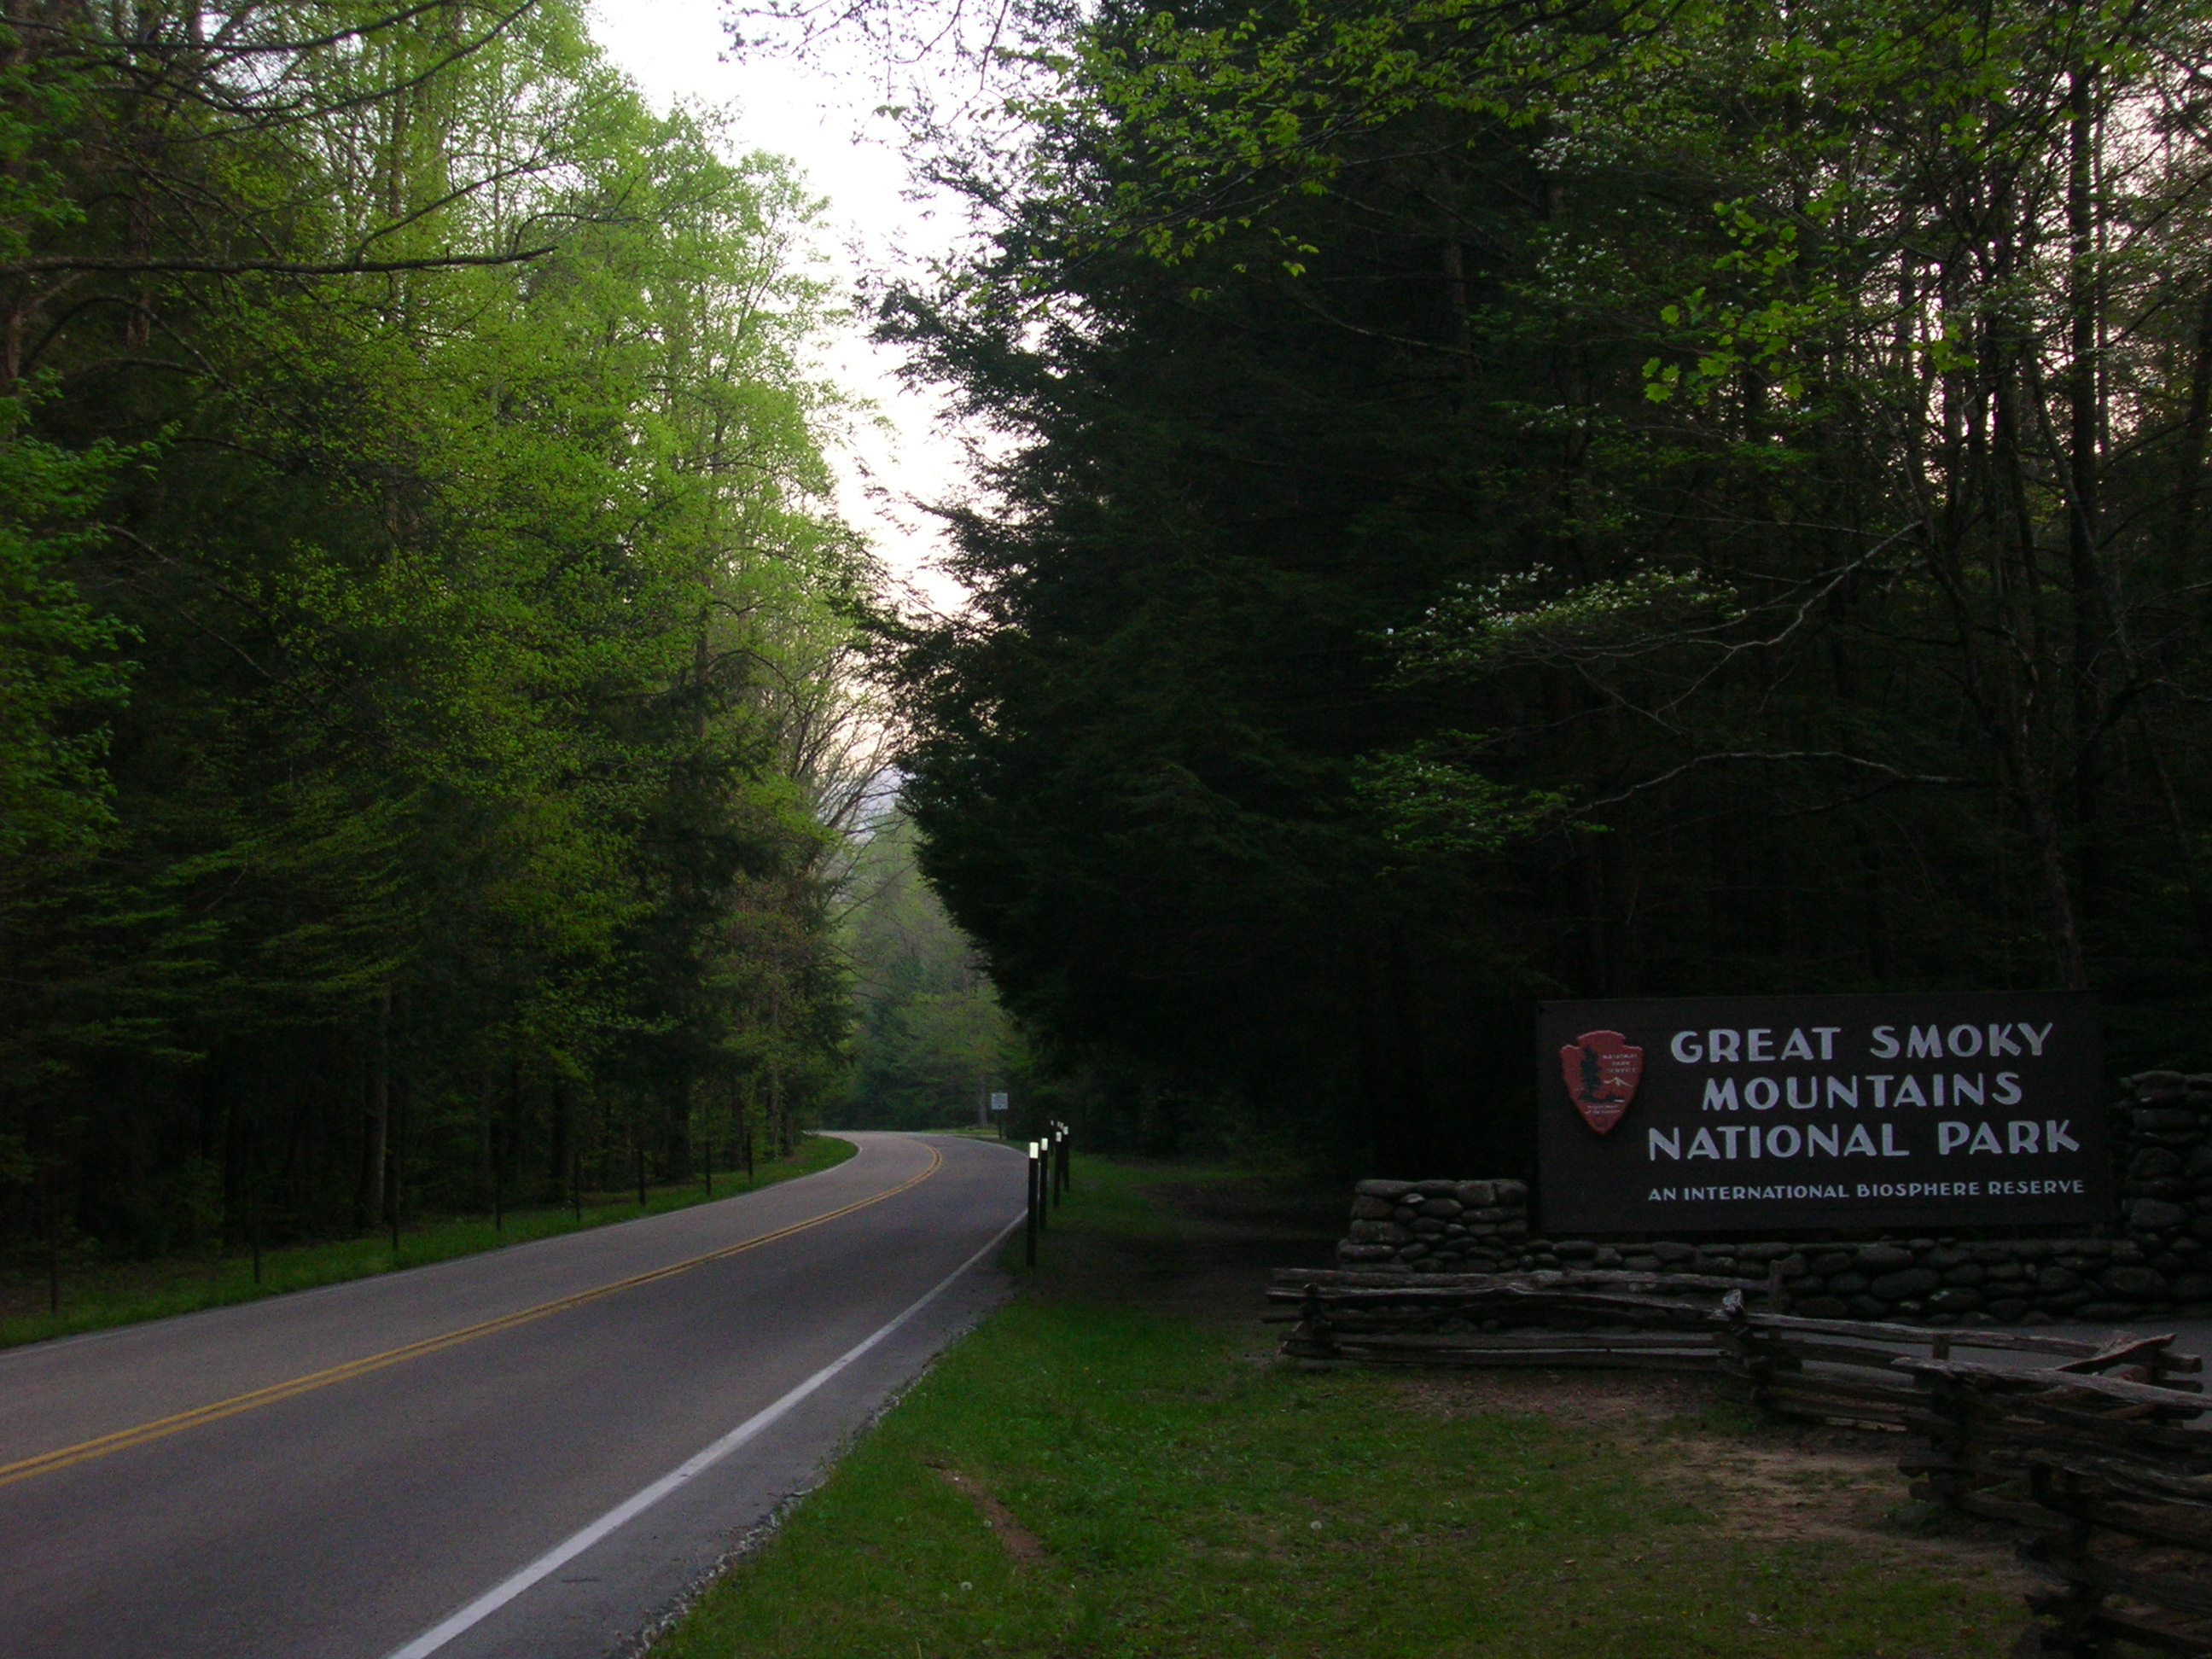 Main entrance to the Great Smoky Mountains National Park from Gatlinburg, Tennessee.